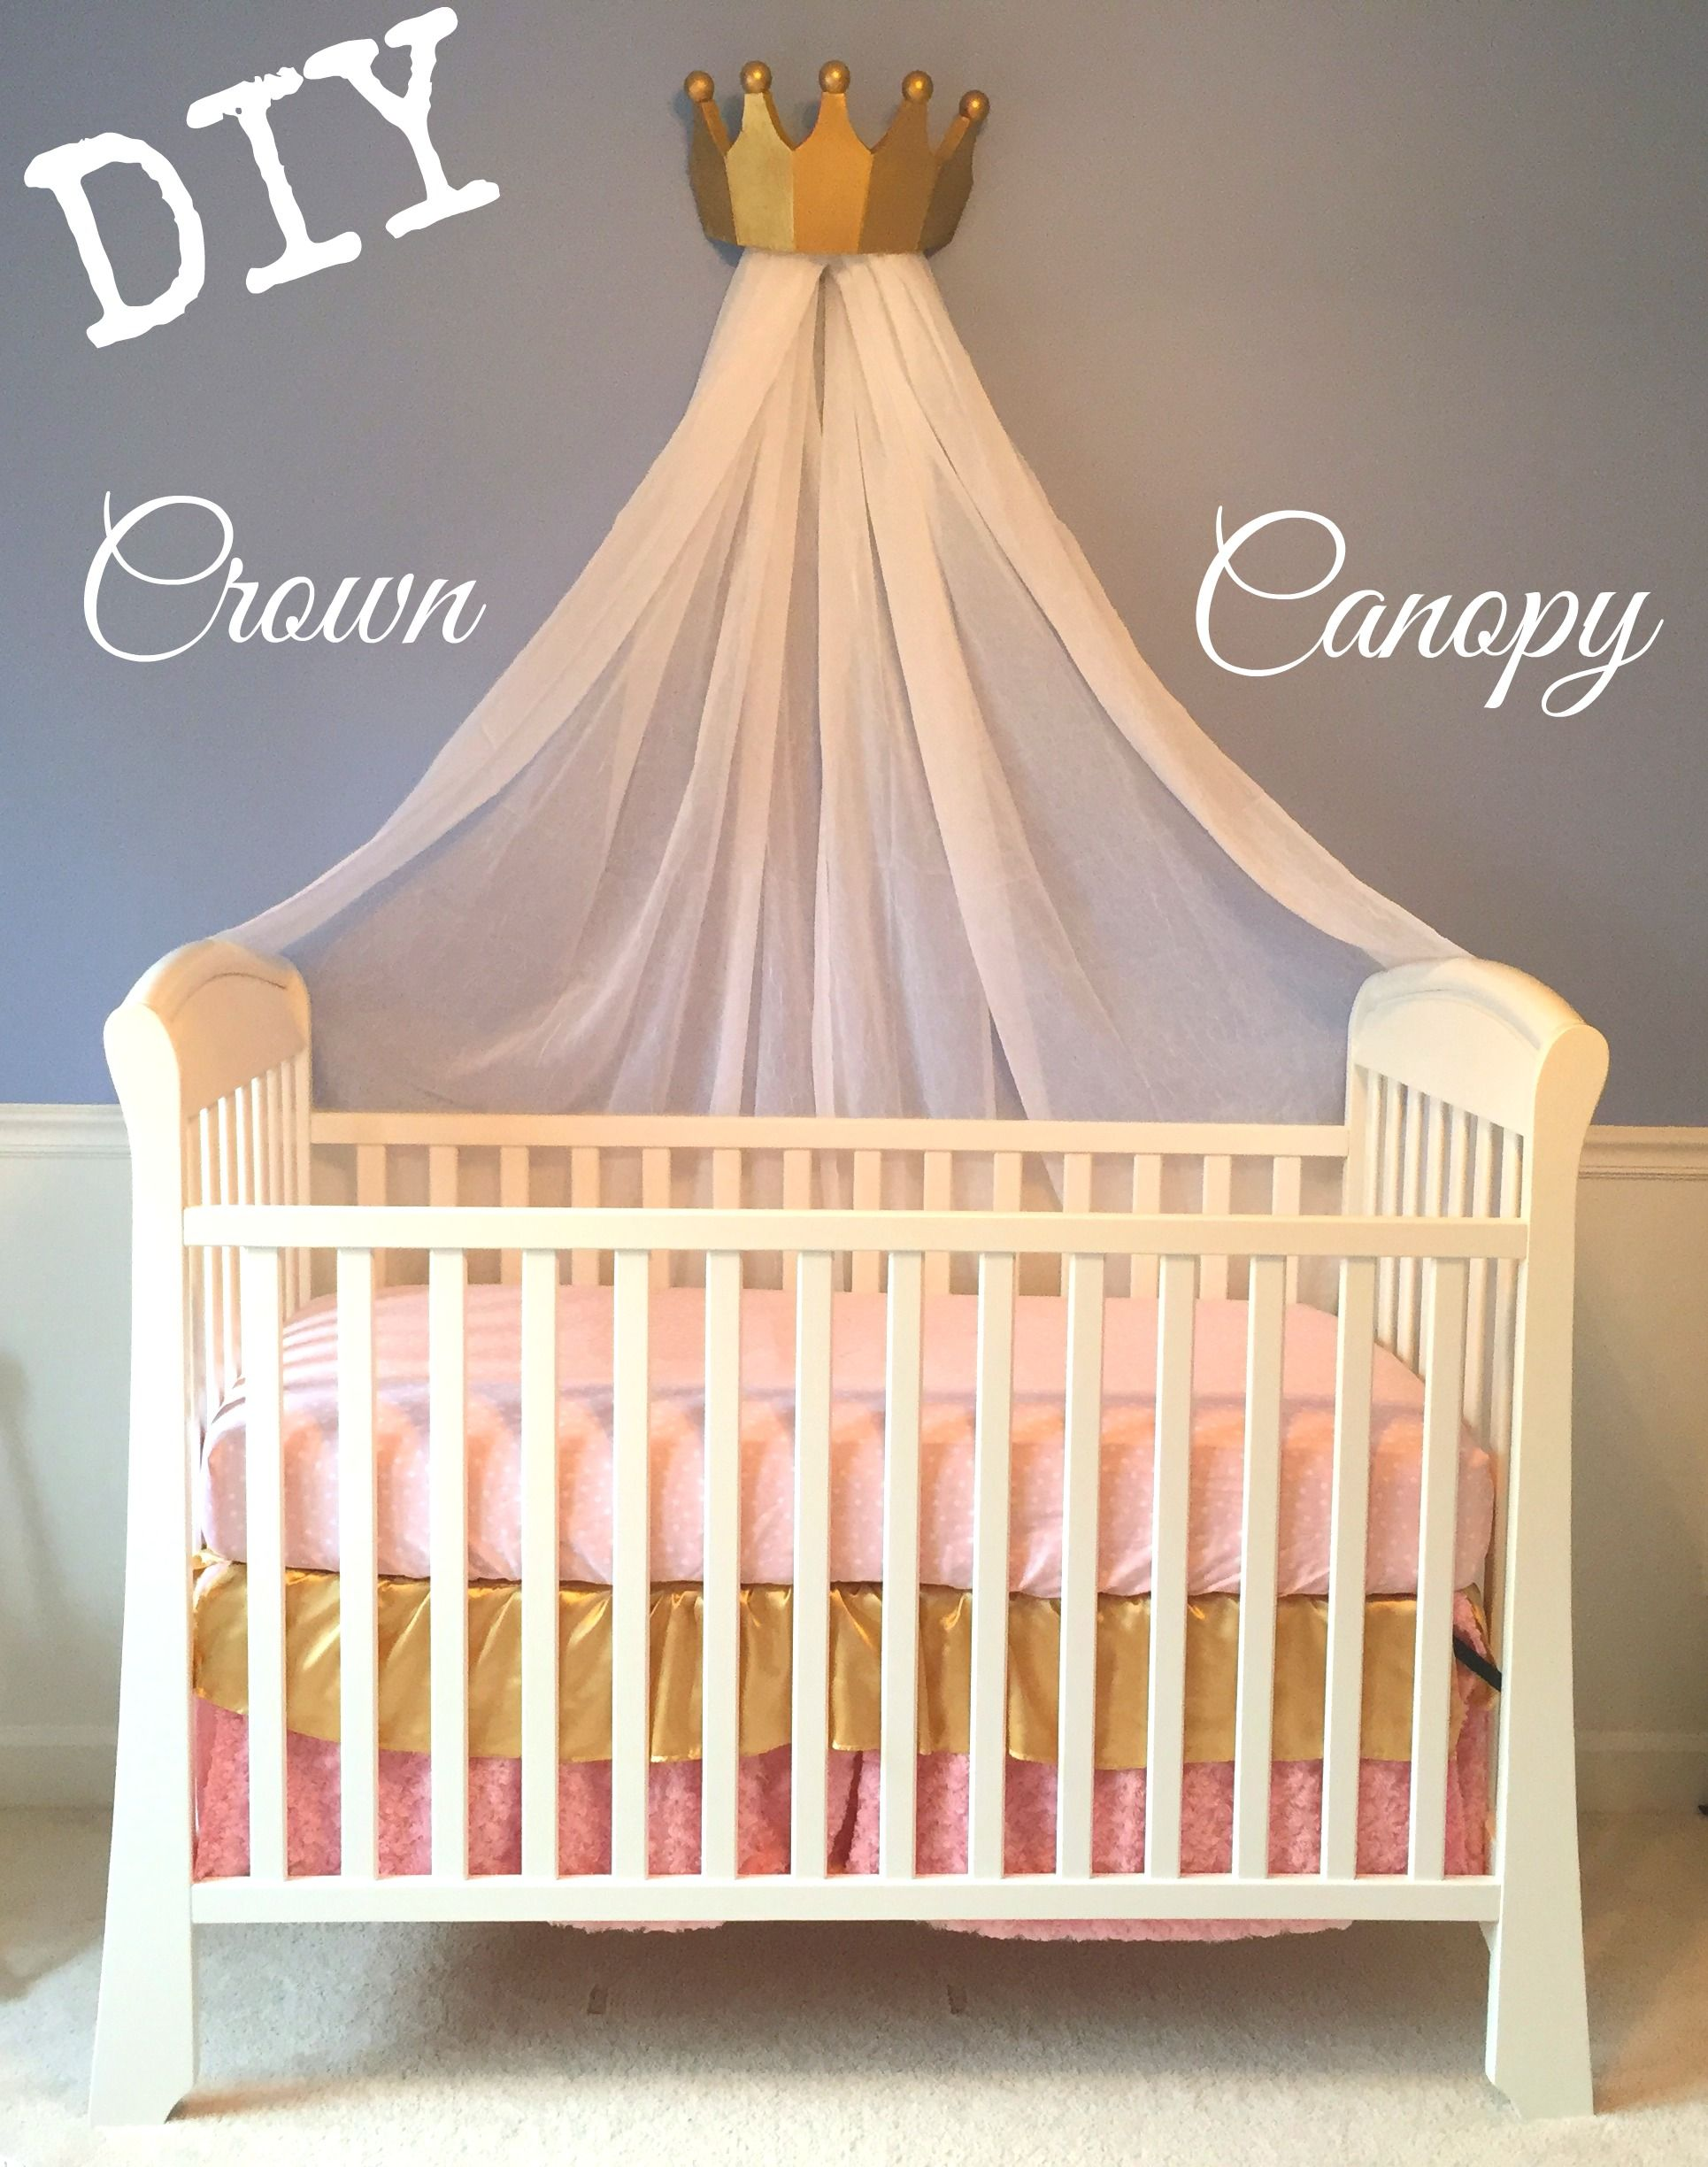 diy crown canopy for a crib or bed fit for a princess